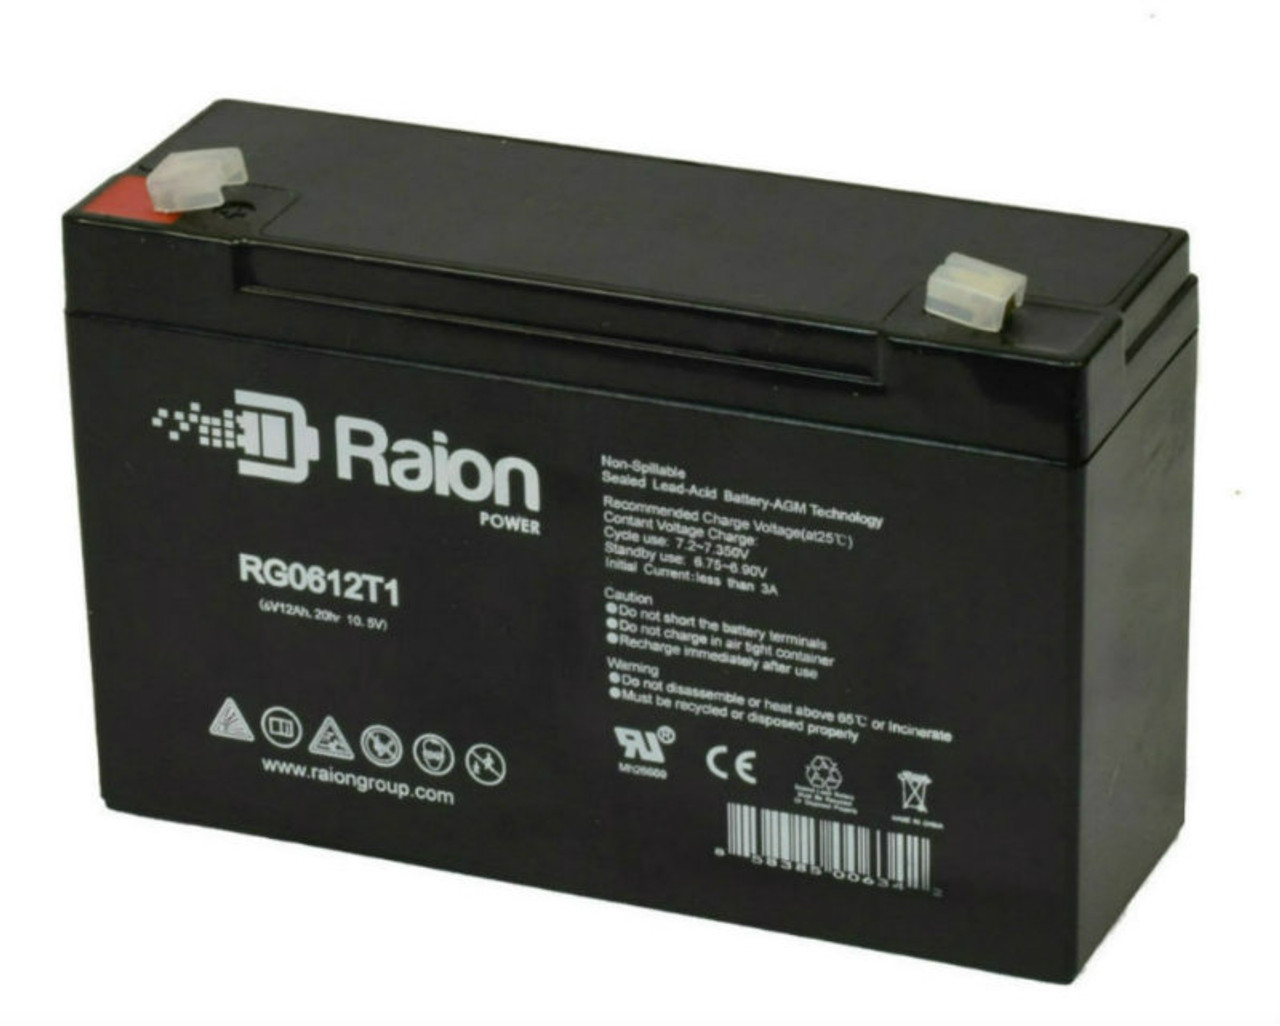 Raion Power RG06120T1 Replacement Battery Pack for Tork 436 emergency light